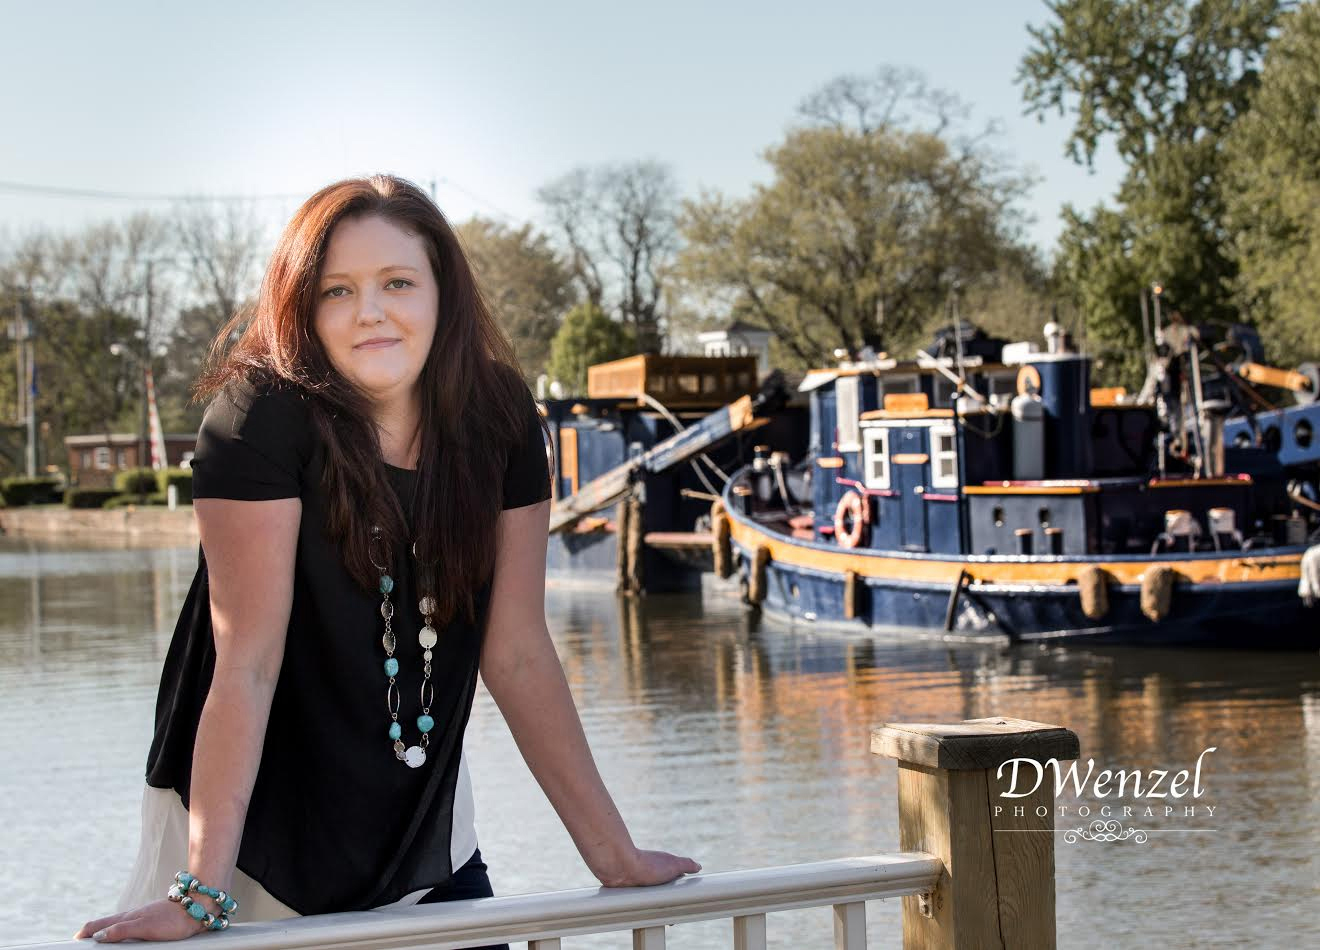 Nora Venezky stands outside the depot along the canal with a tugboat in the background. Provided photo